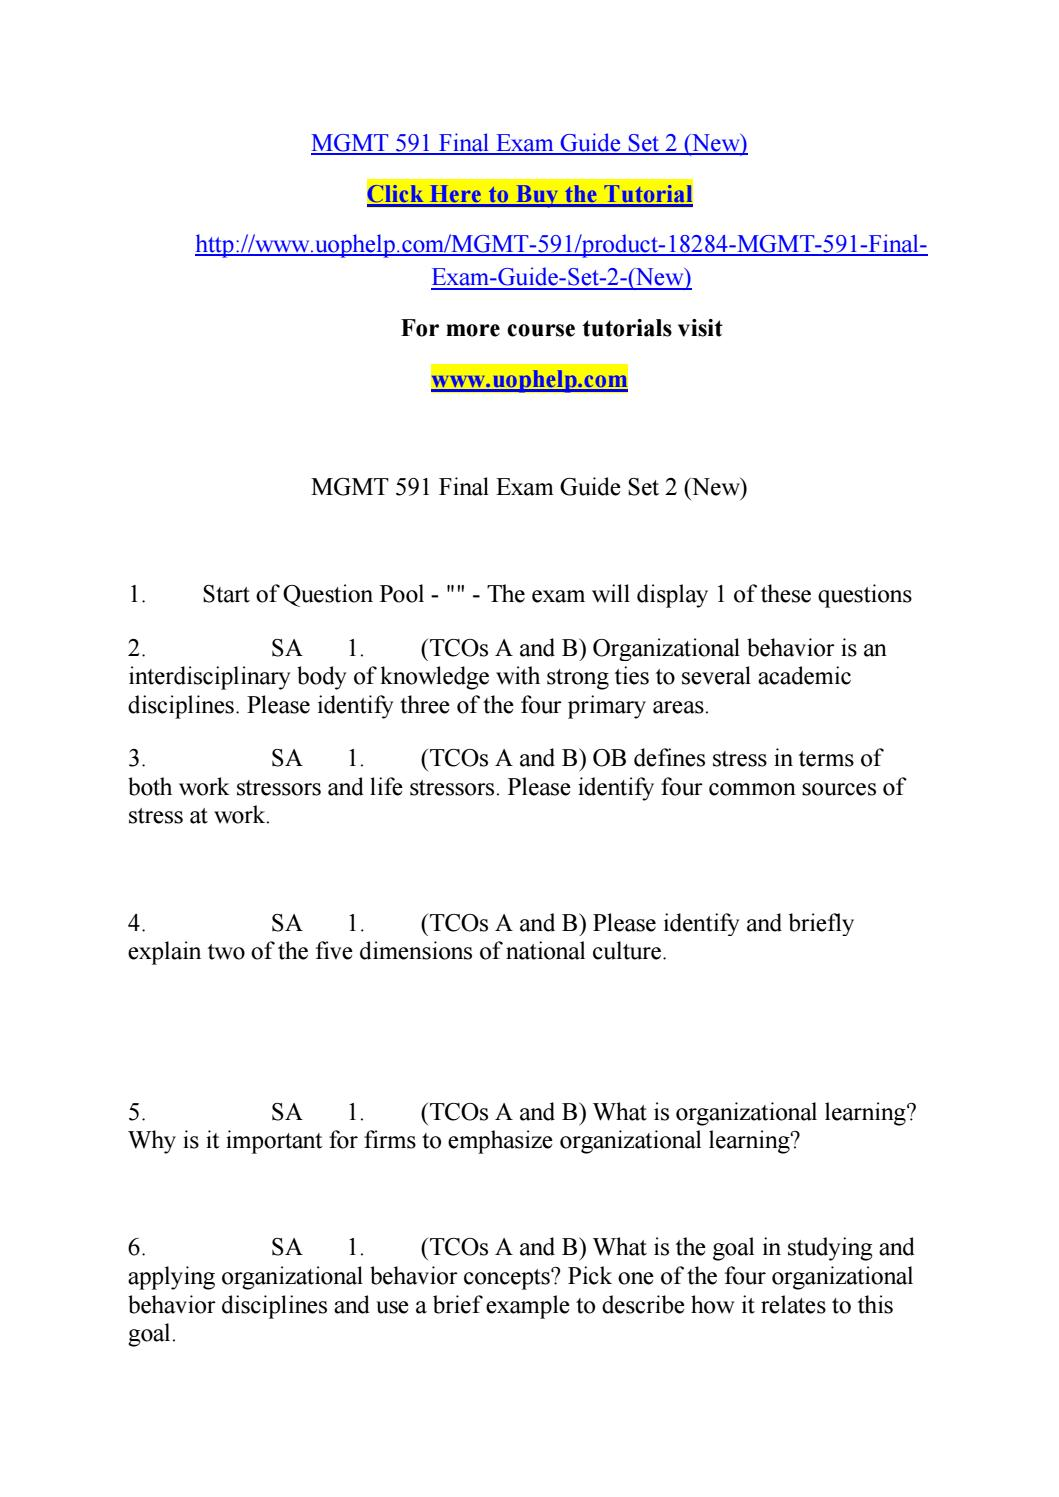 Mgmt 591 final exam questions | Term paper - June 2019 - 2835 words